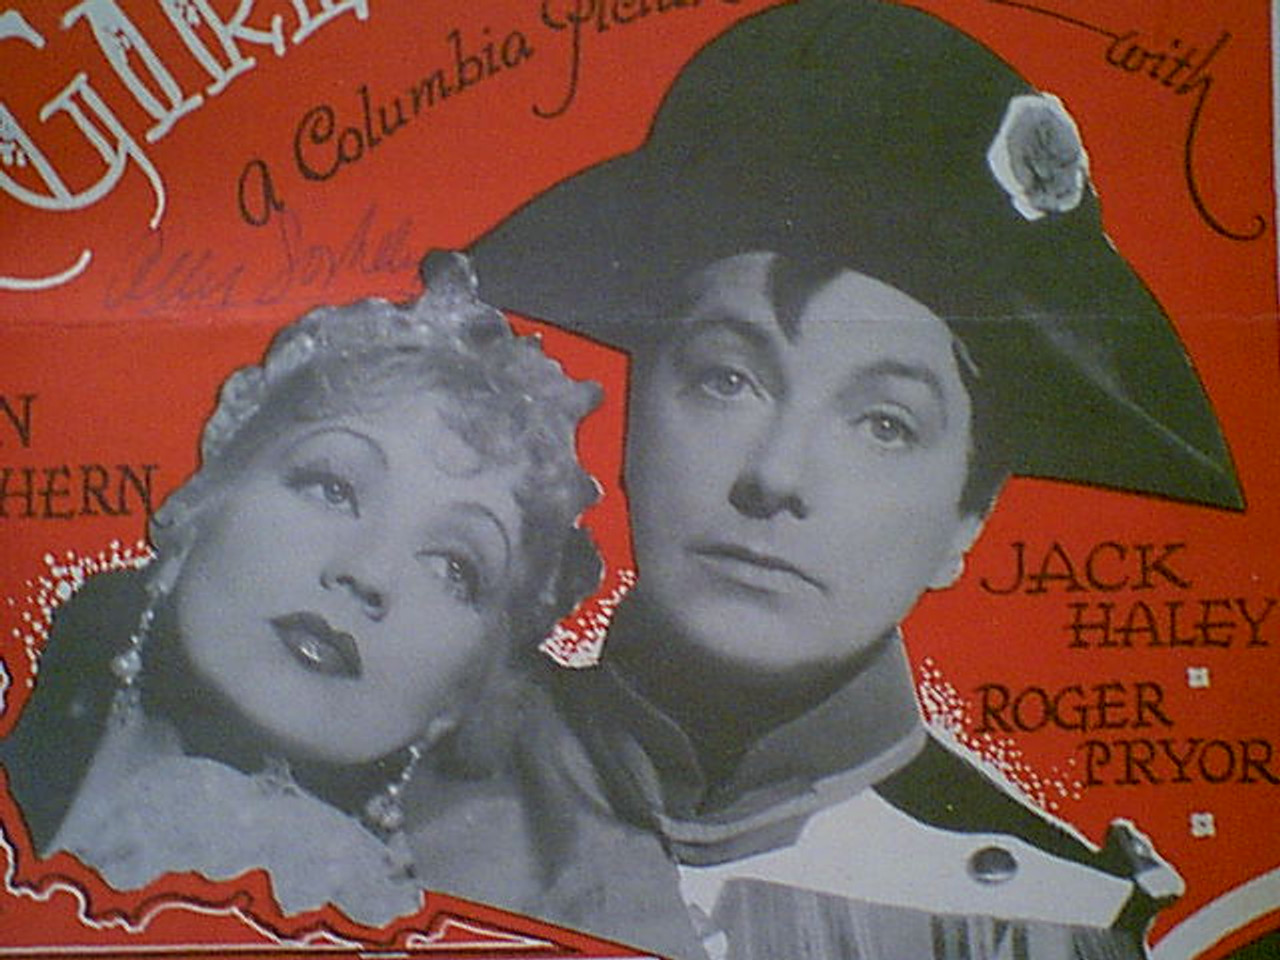 """Haley, Jack Ann Sothern """"The Girlfriend"""" 1935 Sheet Music Signed Autograph """"What Is This Power?"""" Photos"""